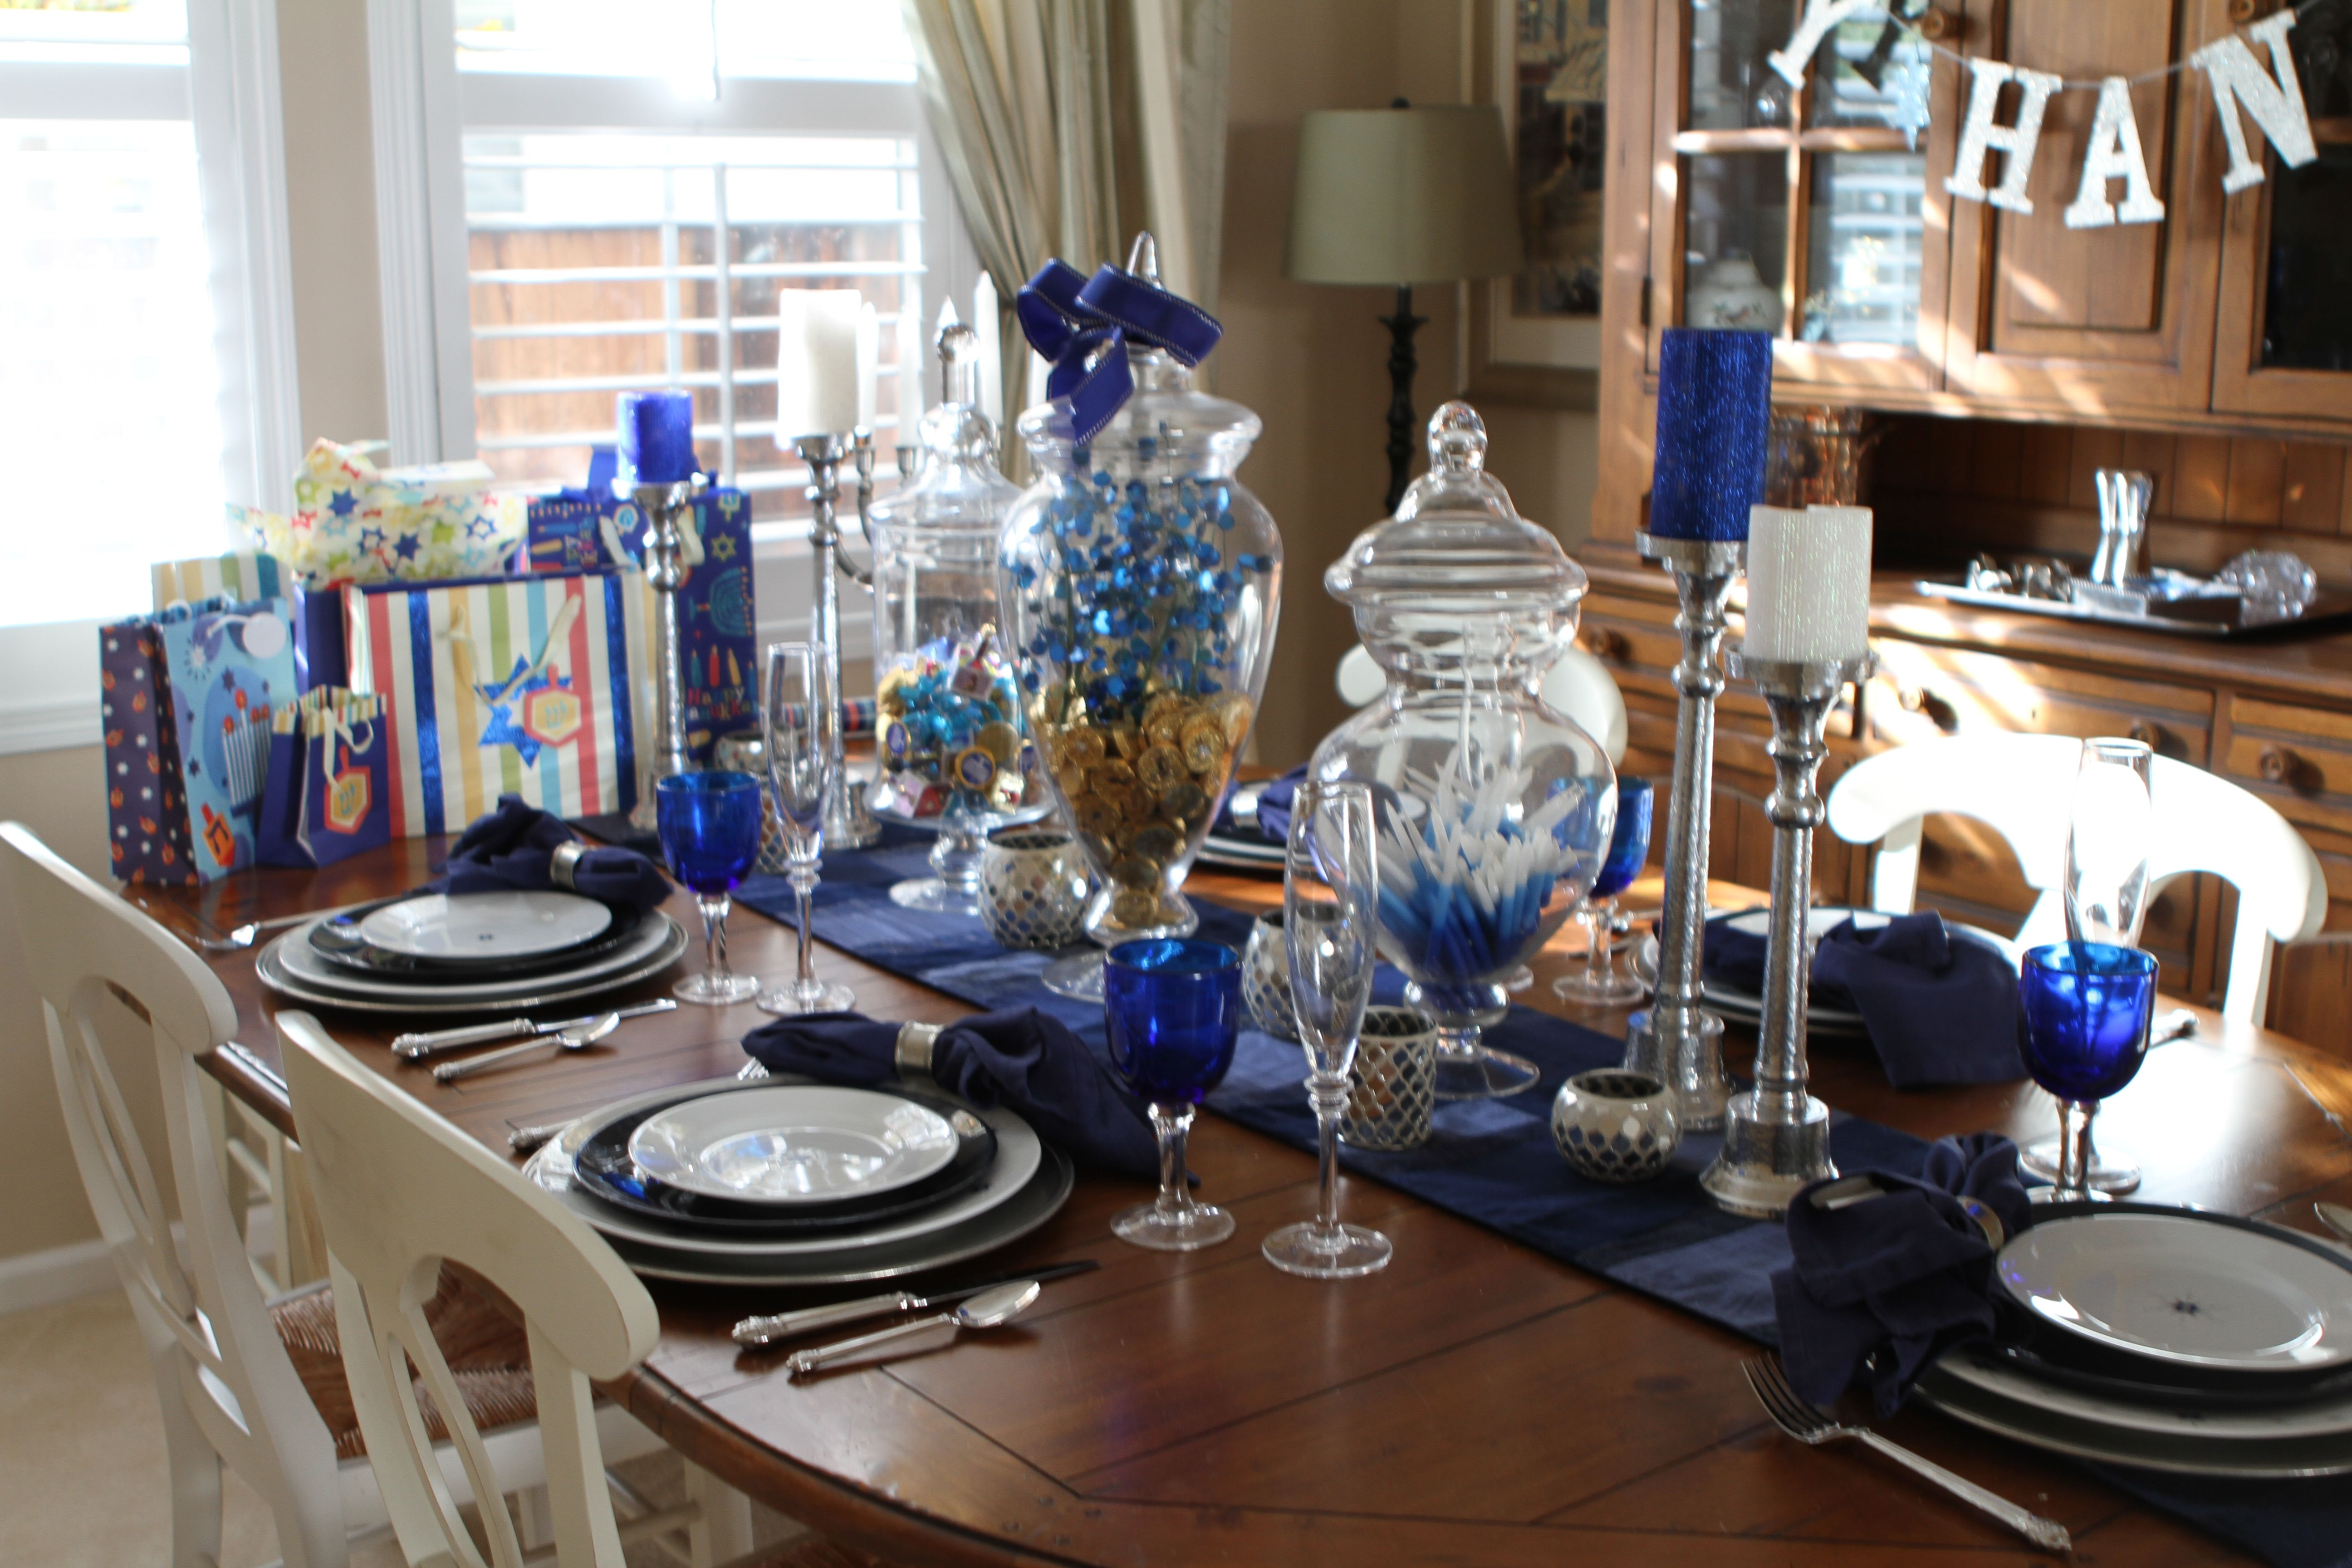 hanukkah decor | Hanukah | Pinterest